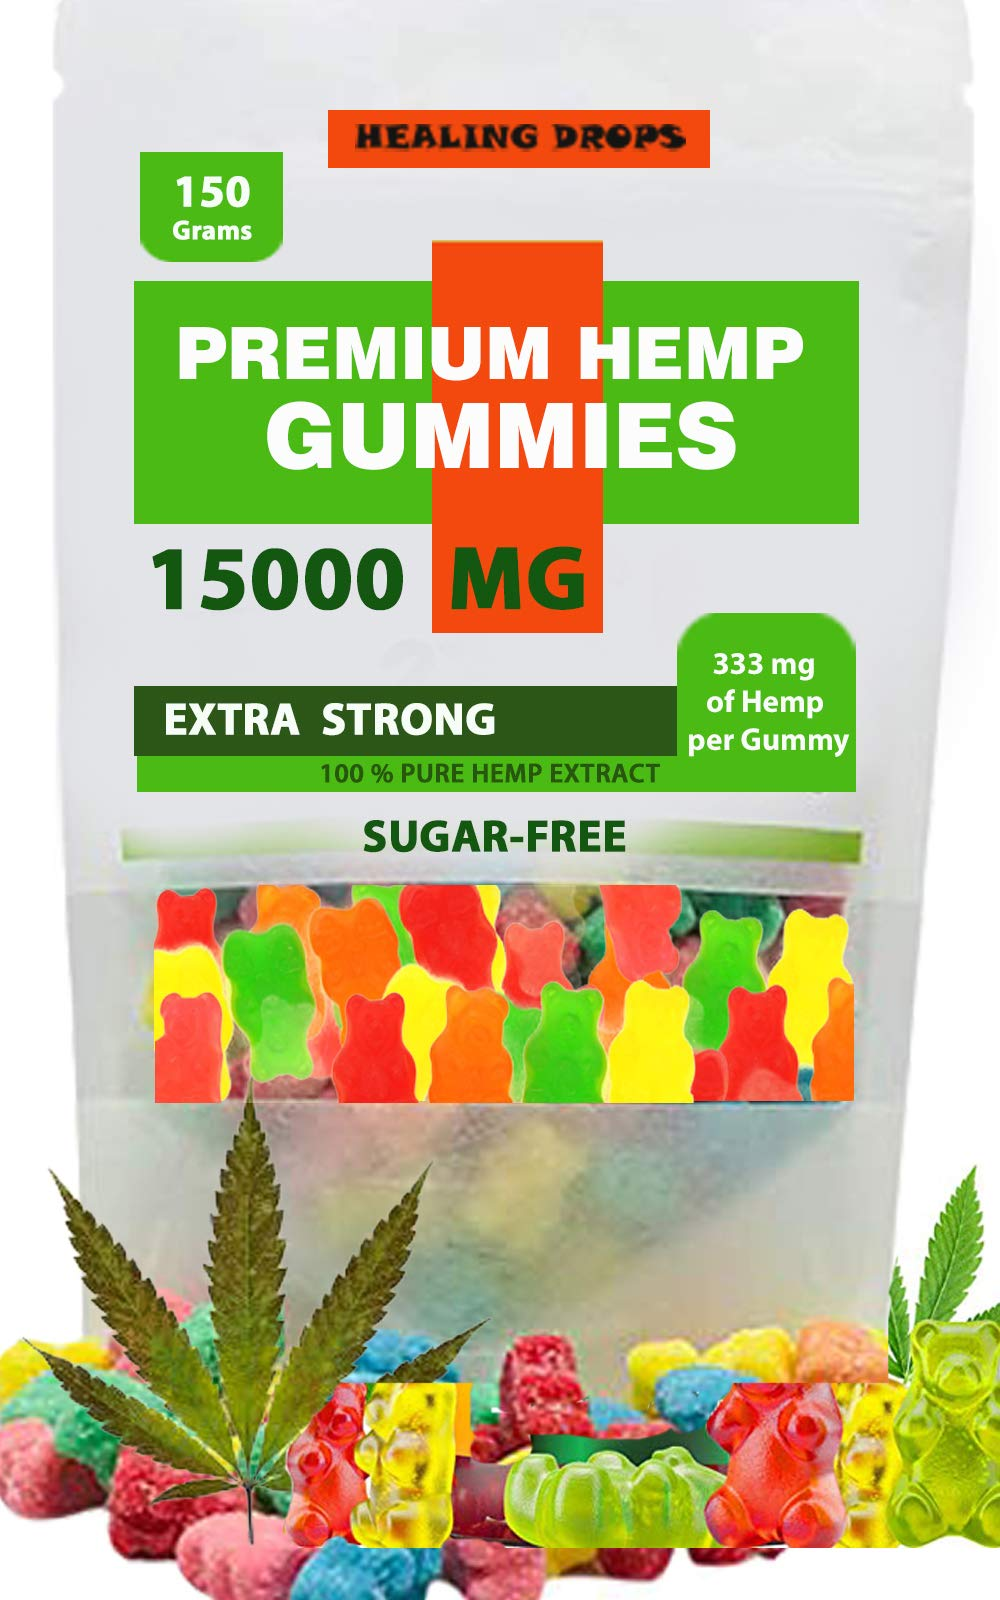 Premium Organic Hemp Sugar-Free Gummies Natural Health Support 15000MG, 166MG Each, High Potency Relaxing, Stress & Anxiety Relief Rich in Vitamins B, E, C, D, Omega 3, 6, 9 Super Friendly Gummy Bears by Healing Drops